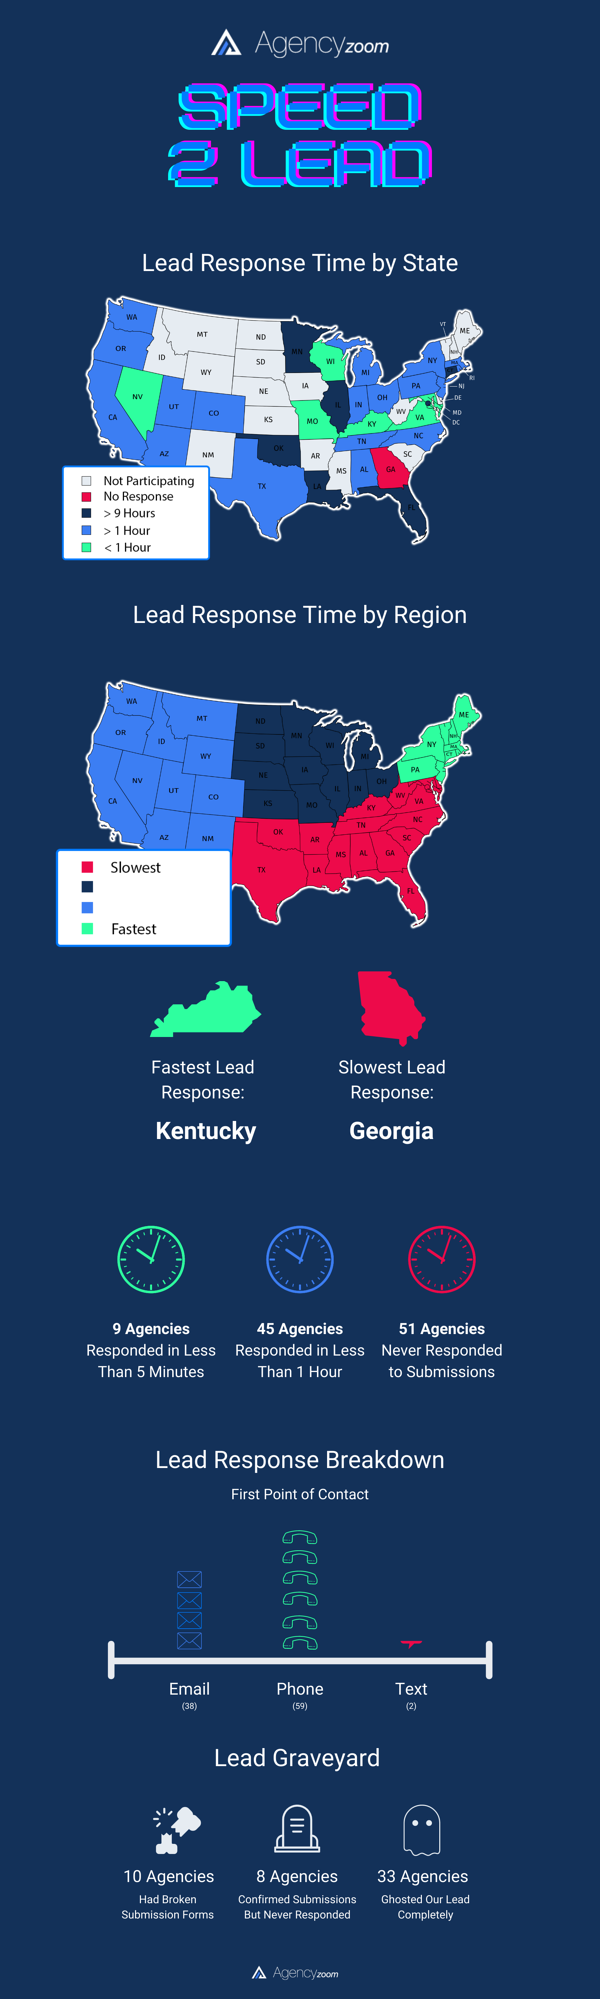 AgencyZoom_Speed2Lead_Infographic_final